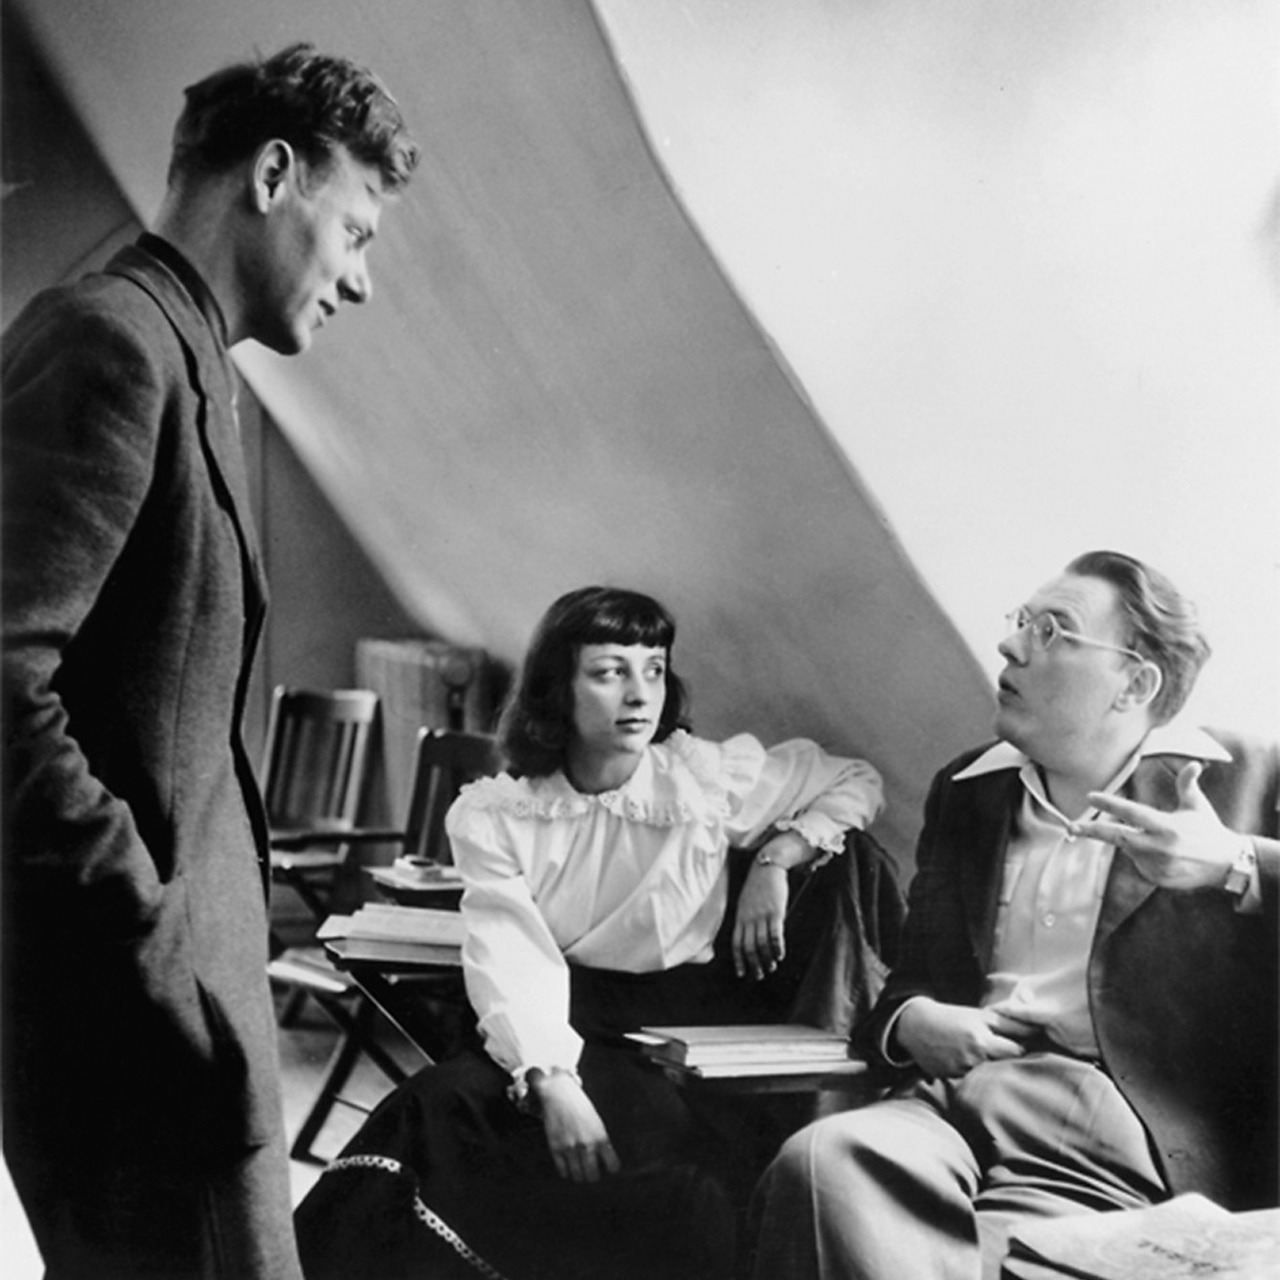 Paul de Man with Renée and Theodore Weiss, Bard College, in 1949